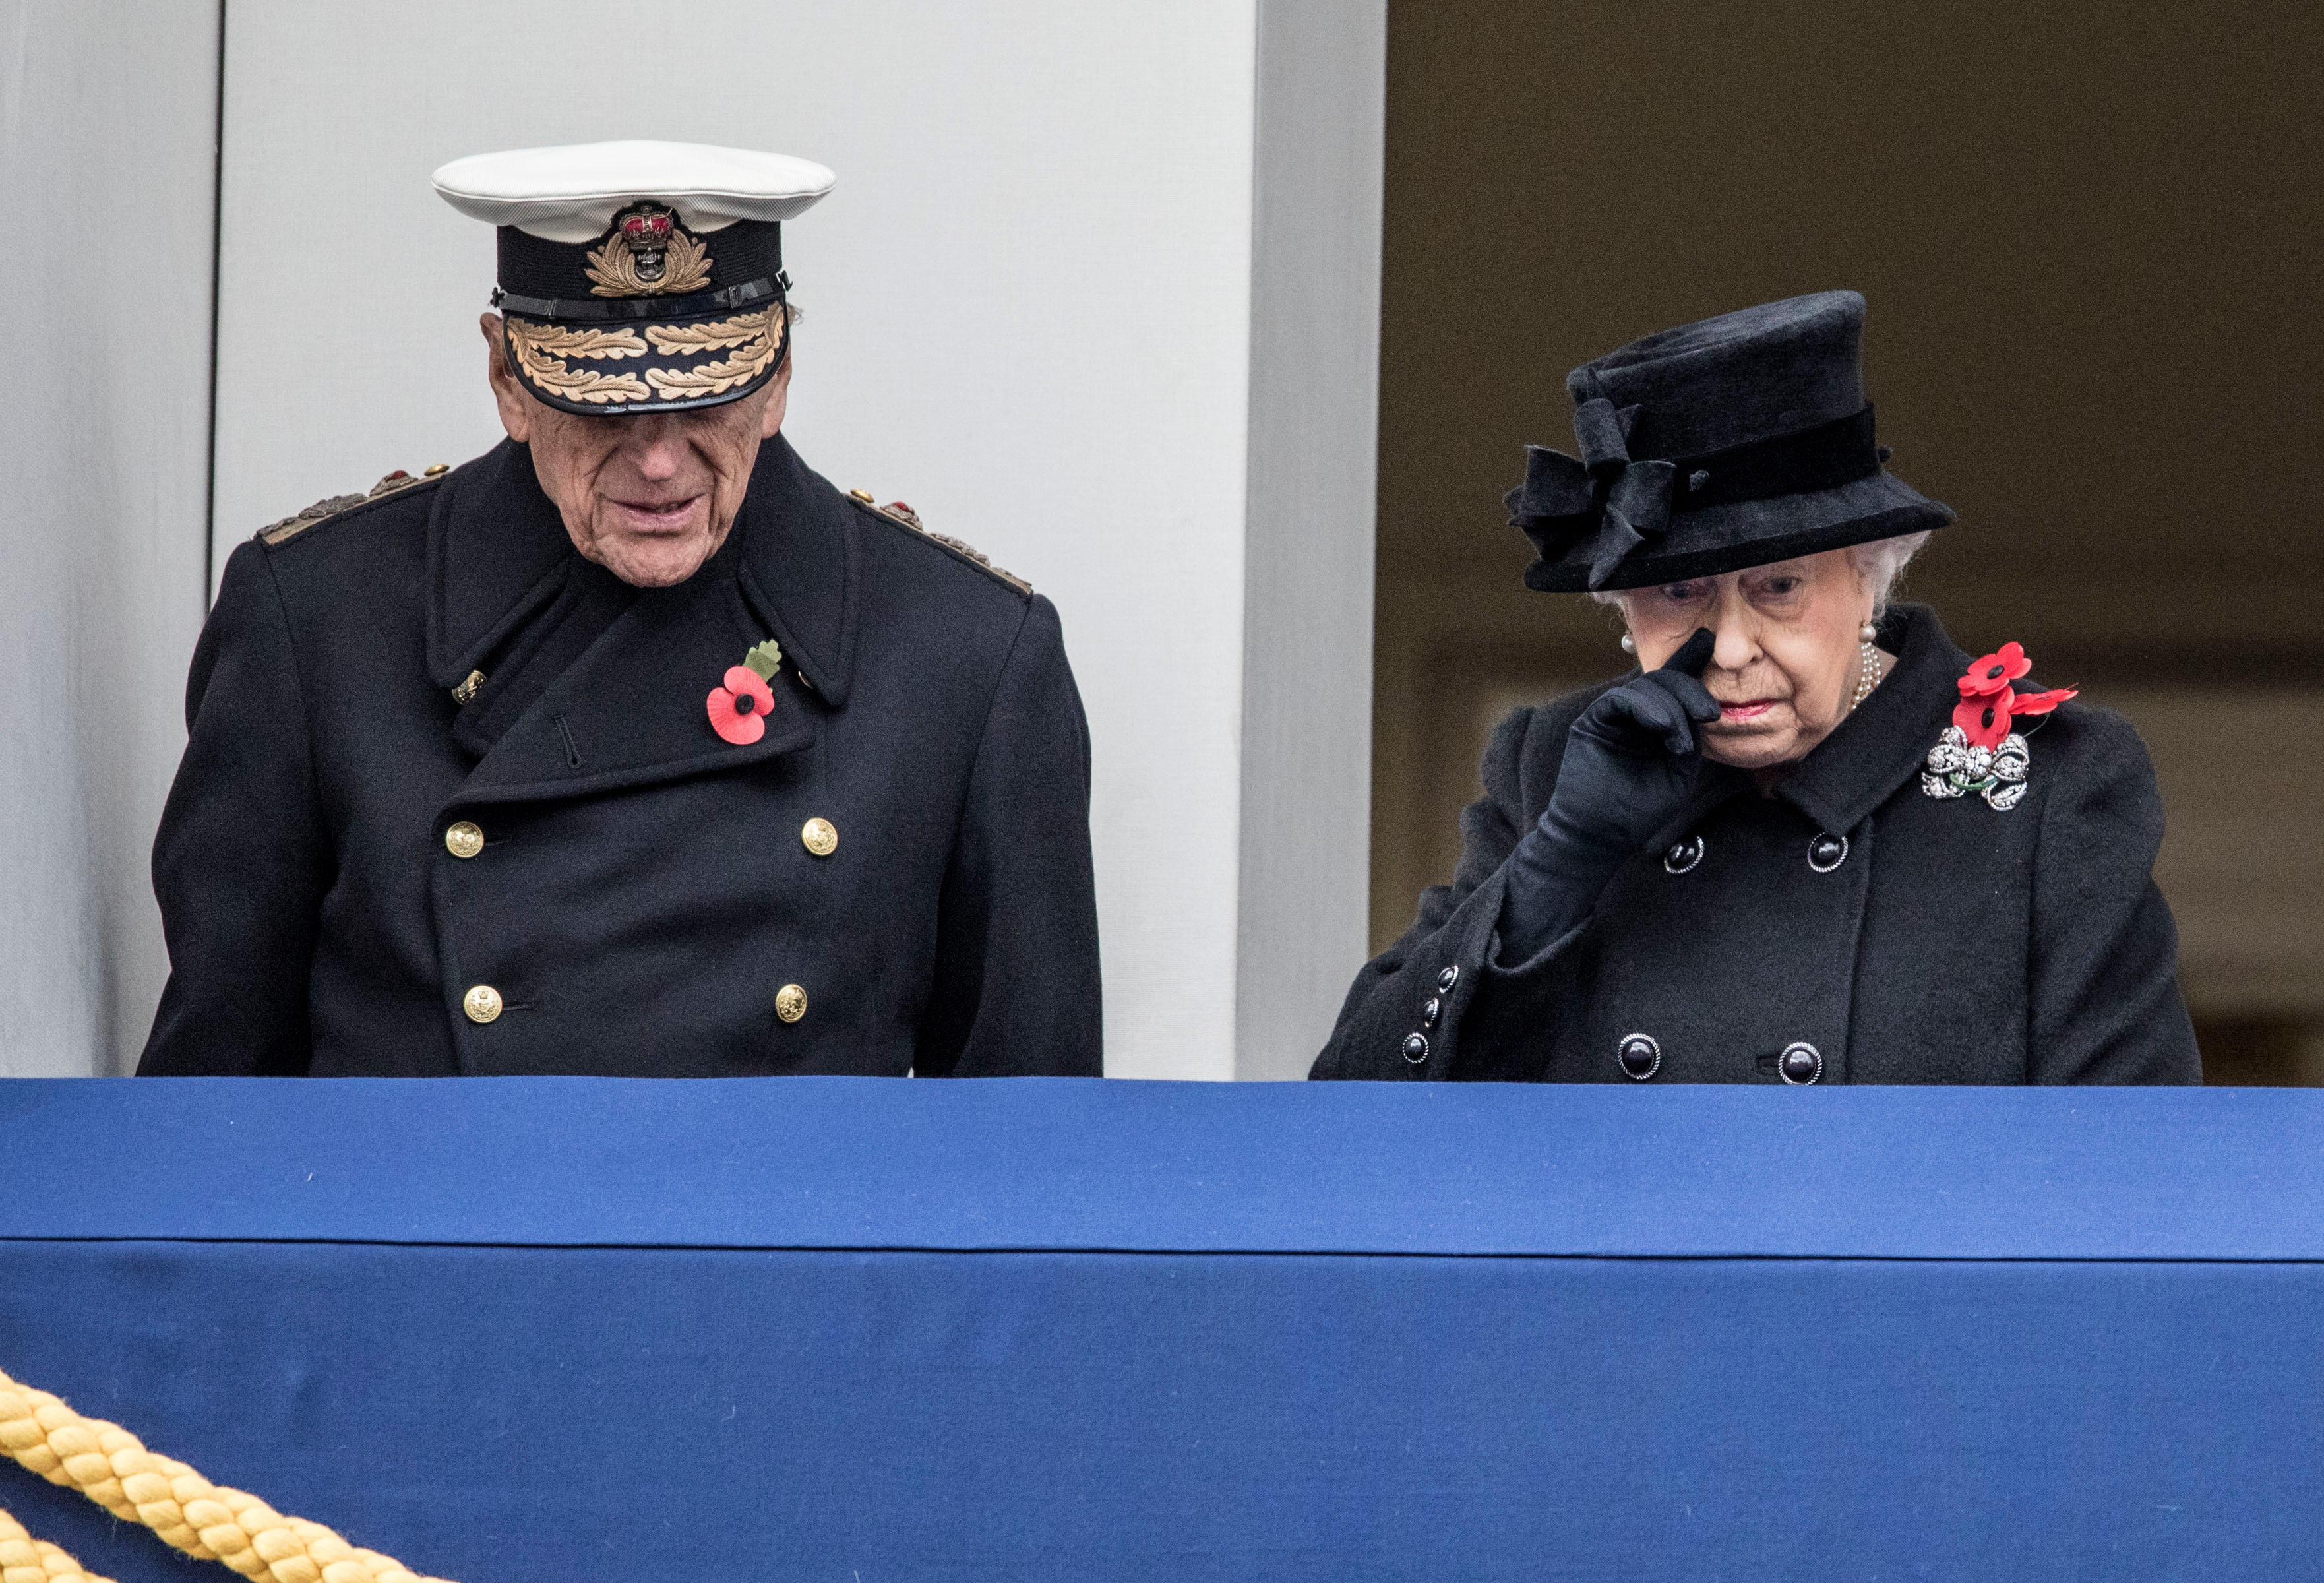 Philip appeared on the balcony with the Queen on Remembrance Day in 2017 - despite being in terrible pain from his hip